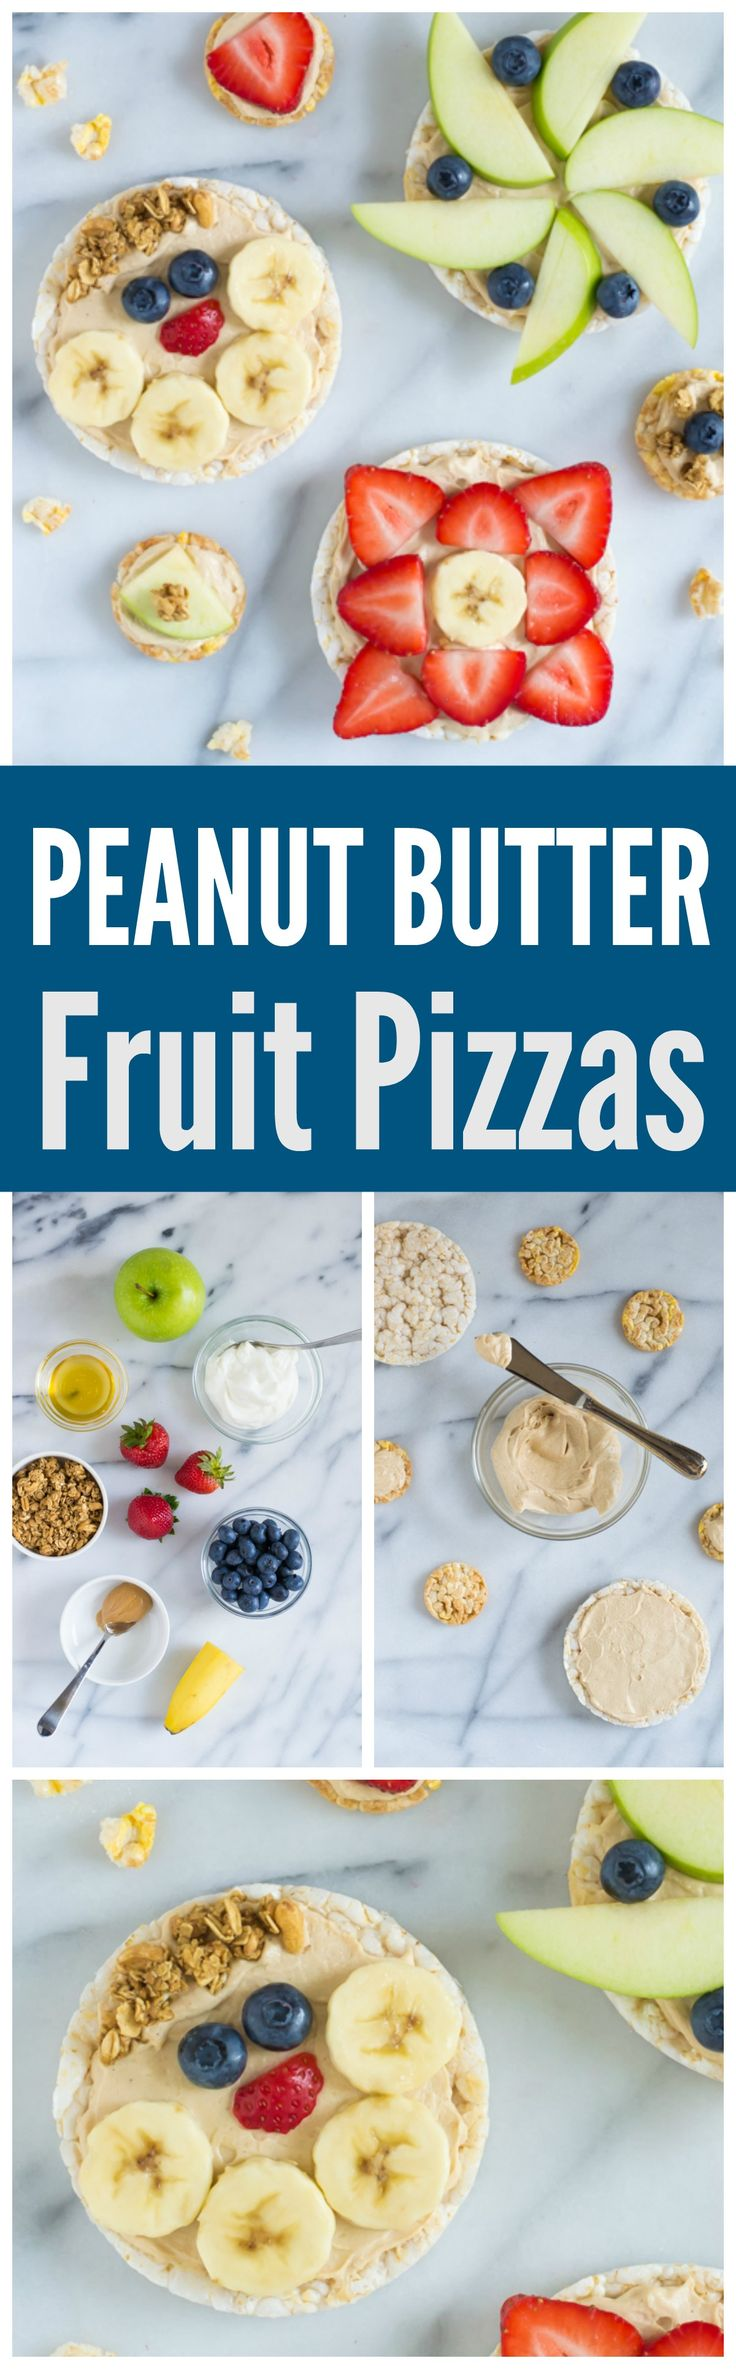 """Peanut Butter Healthy Fruit Pizzas. Kids LOVE these! Rice cakes spread with a creamy peanut butter yogurt """"sauce,"""" topped with fresh fruit. A perfect healthy snack for kids. Great for lunchboxes and healthy after school snacks too! Recipe at wellplated.com @wellplated #backtoschool #healthysnacks"""